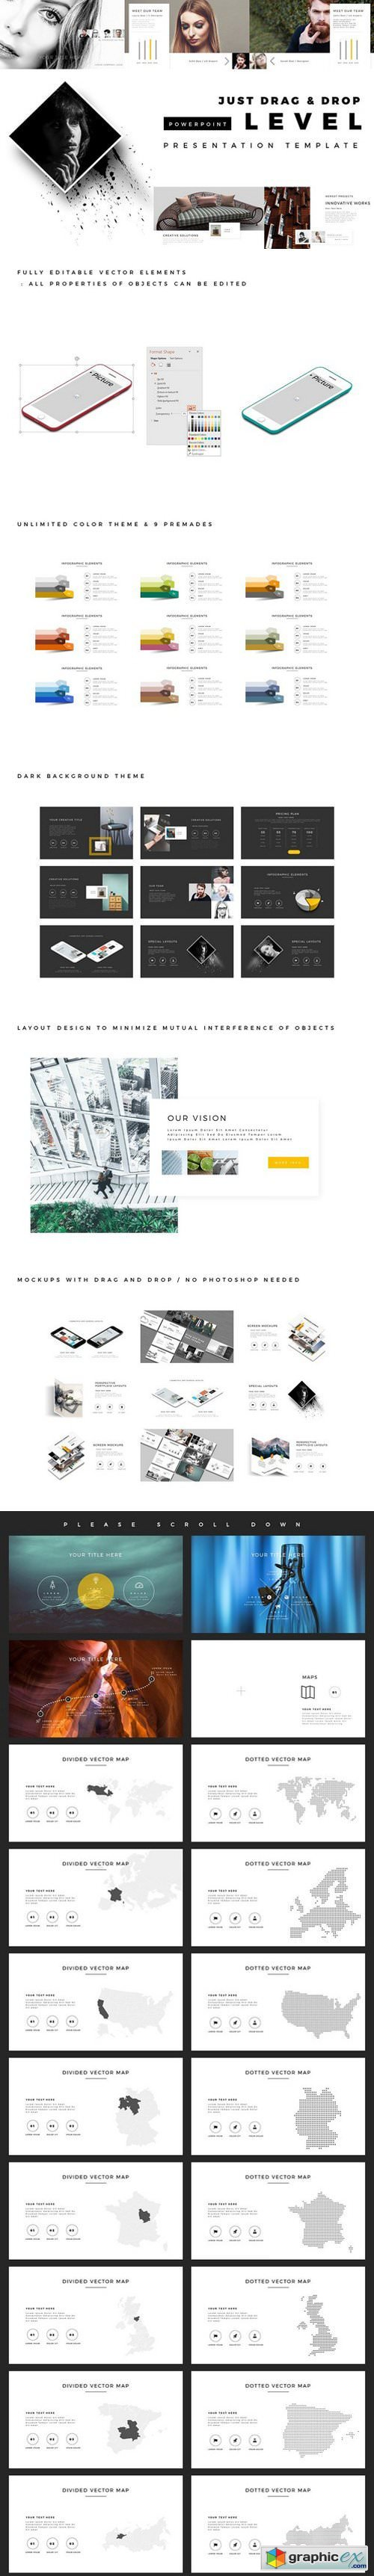 Powerpoint templates indesign images powerpoint template and layout indesign powerpoints free download vector stock image level powerpoint template toneelgroepblik images toneelgroepblik Choice Image